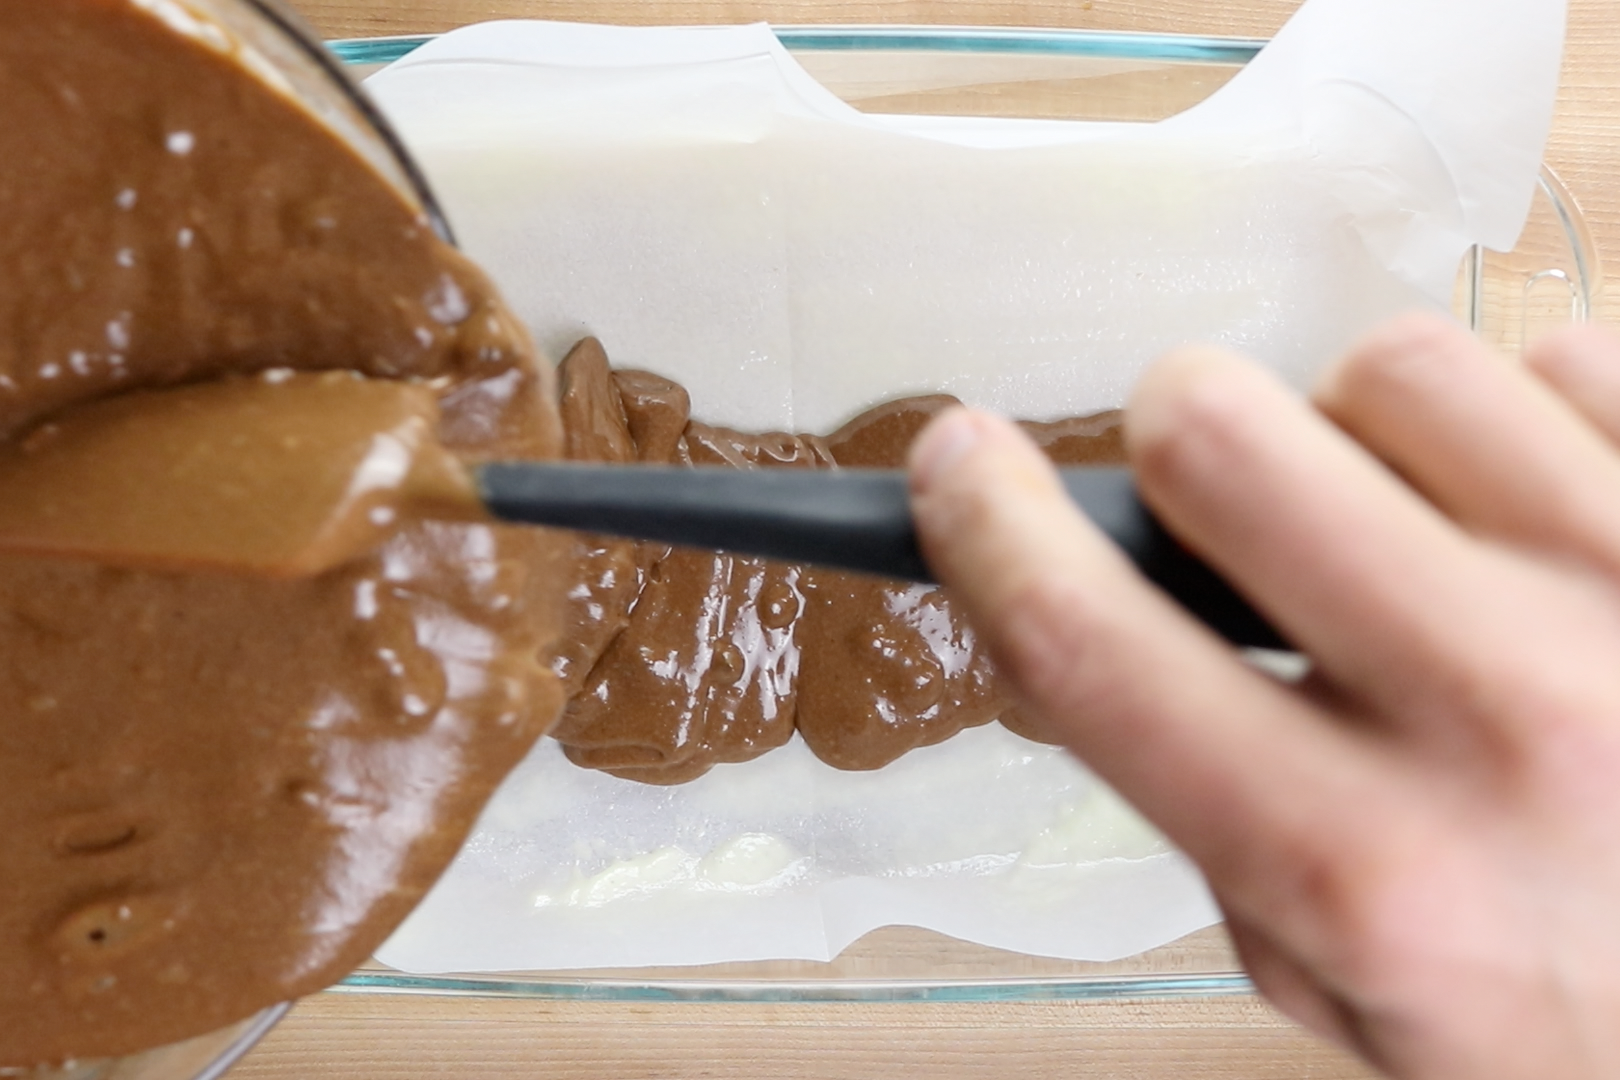 6. Spoon two thirds of the batter into the greased 9x13 inch pan. Bake for 12 minutes.  -